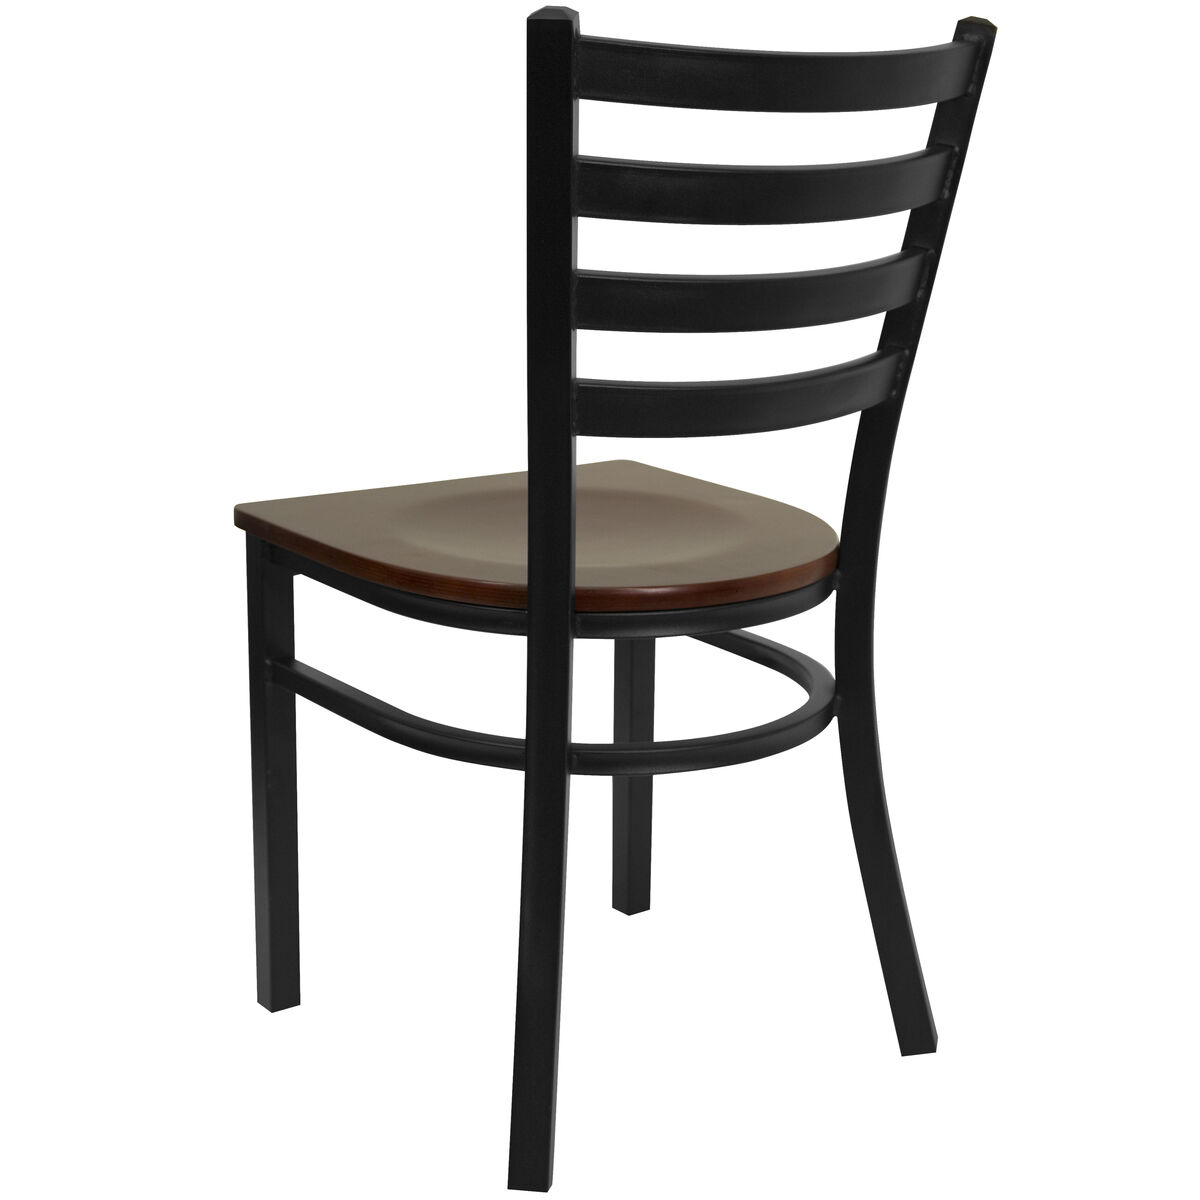 Black Ladder Chair Mah Seat Bfdh 6147ladmw Tdr